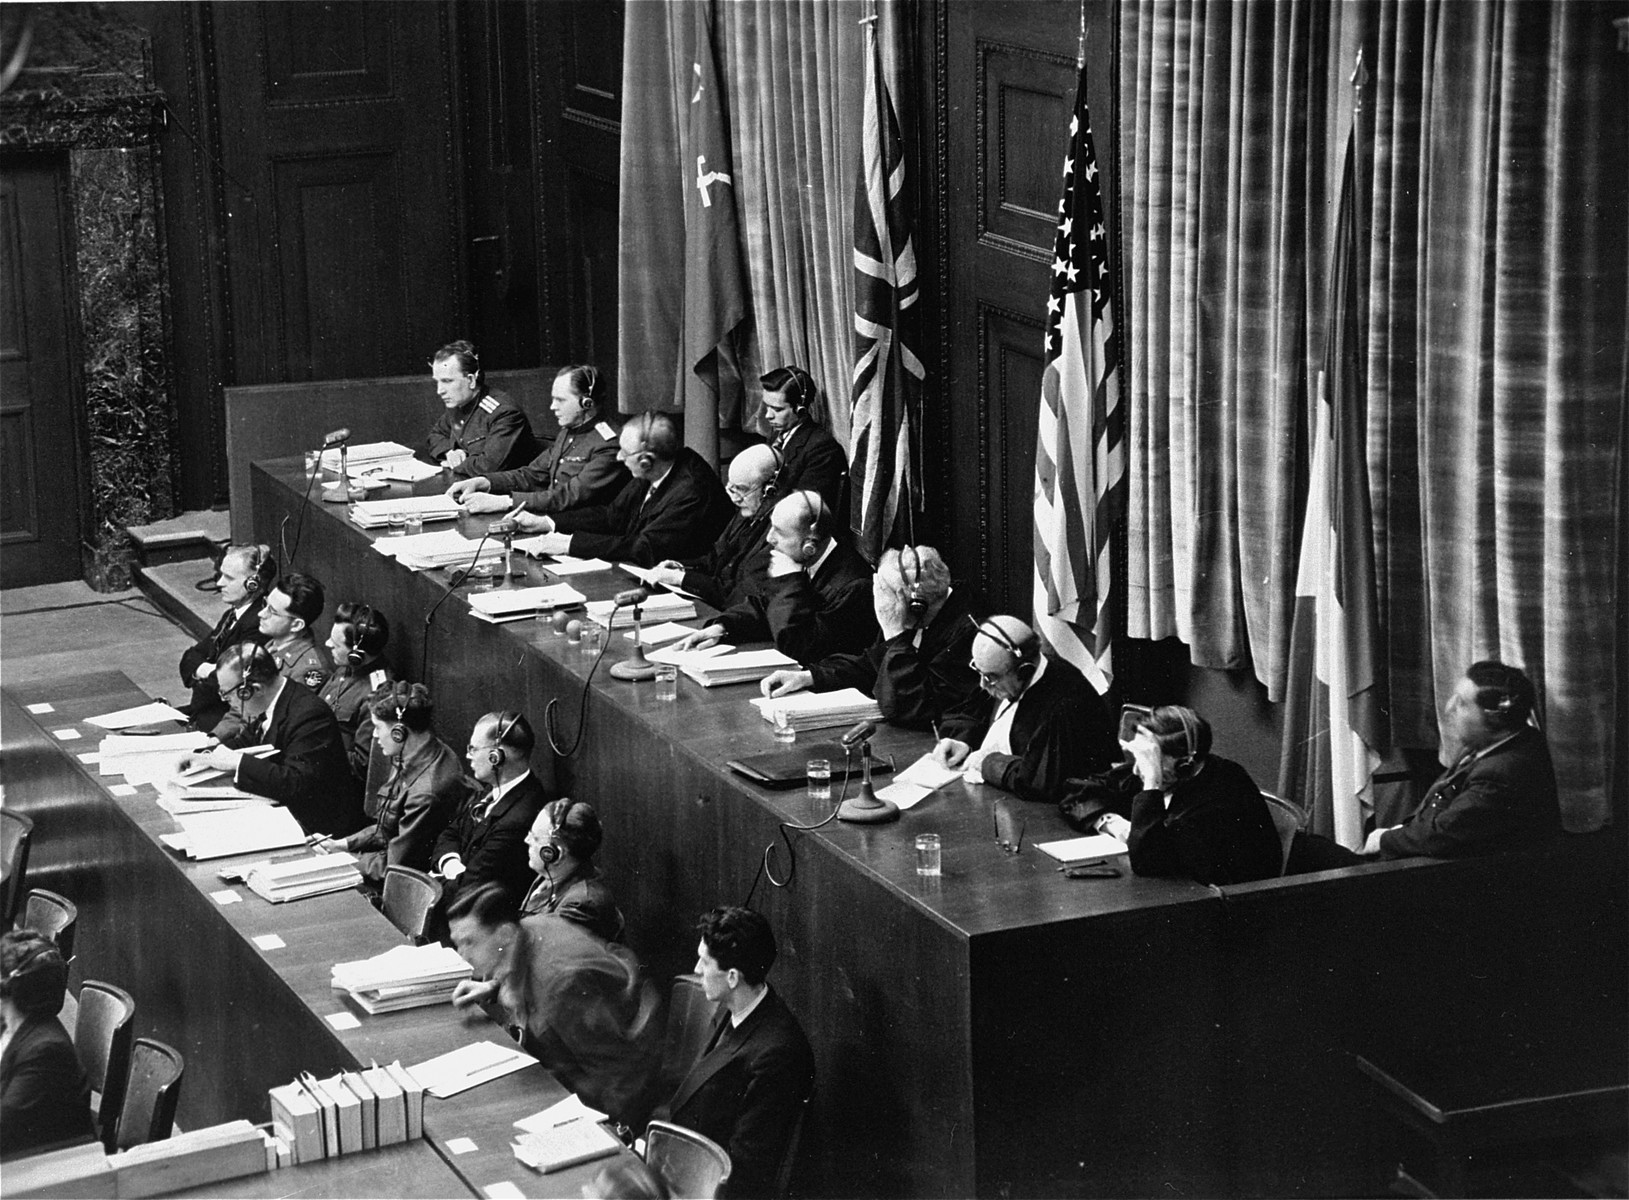 View of the judges' bench at the International Military Tribunal in Nuremberg.    Pictured from left to right are:  Lt. Col. A.F. Volchkov and Maj. Gen. Nikitchenko (U.S.S.R.); Justice Norman Birkett and Tribunal President Lord Justice Geoffrey Lawrence (Great Britain); Judge Francis Biddle and Judge John J. Parker (U.S.); Prof. Donnedieu de Vabres and Robert Falco (France).